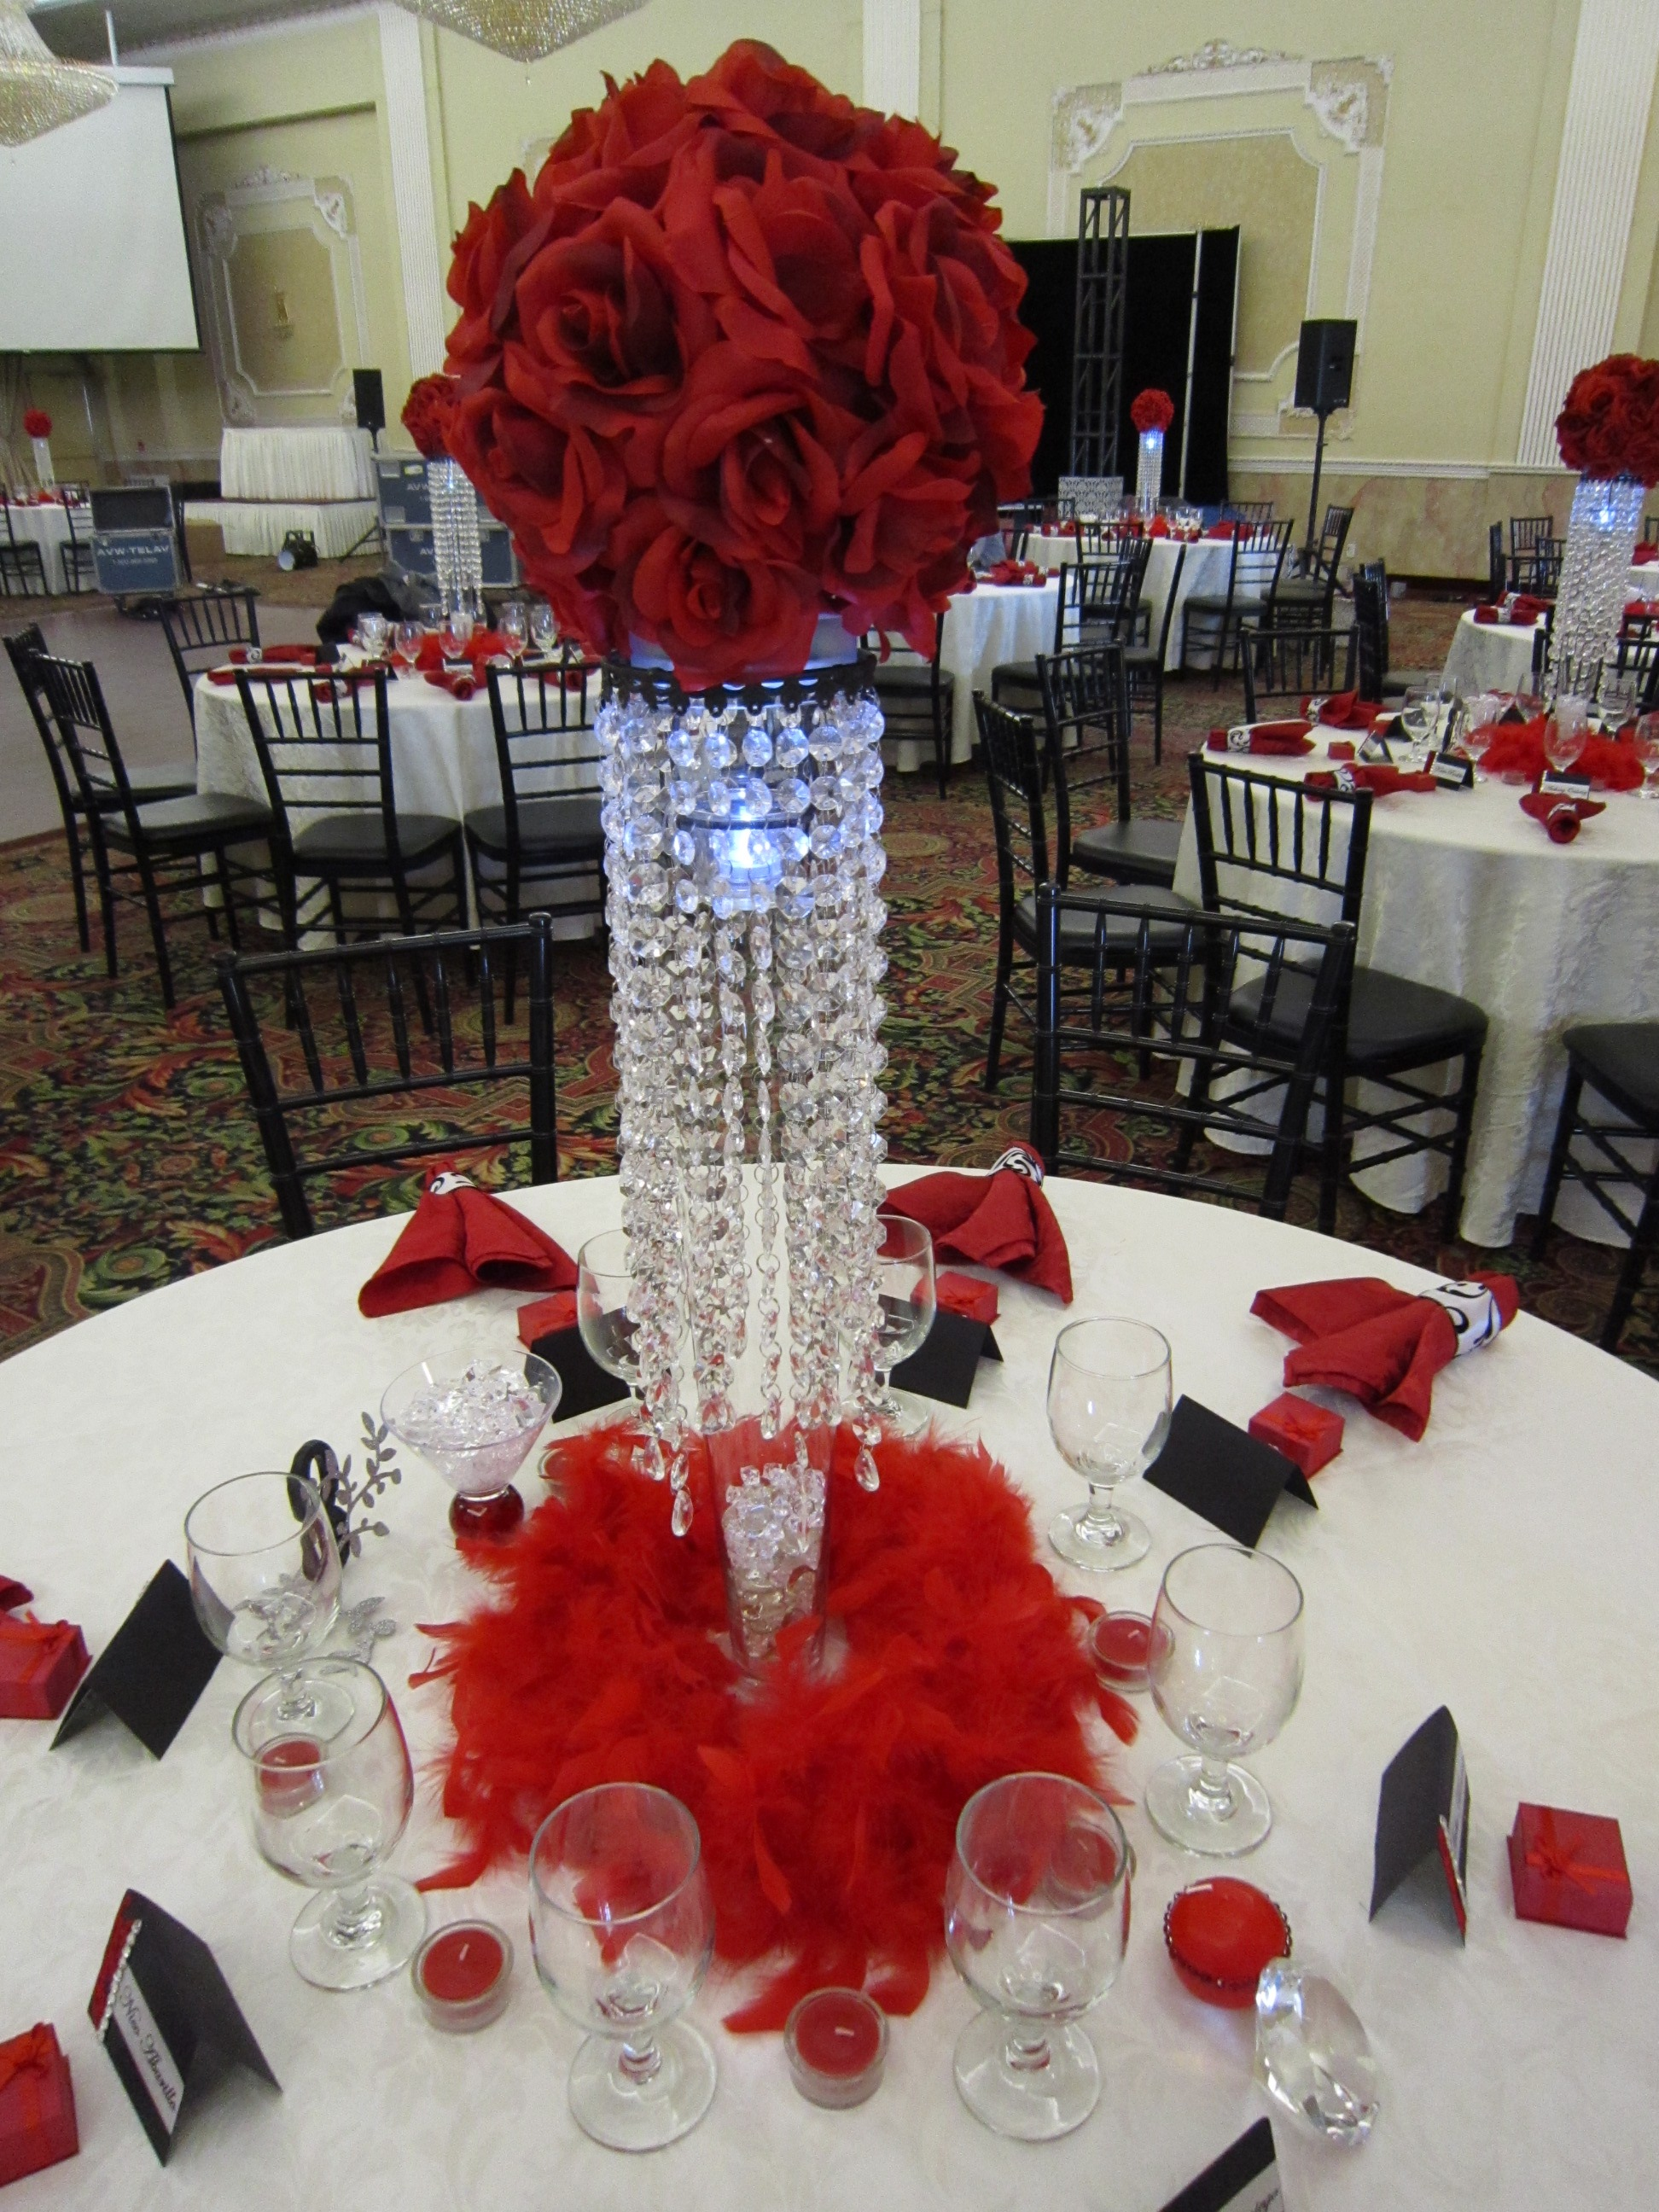 Th birthday party with red rose ball crystal